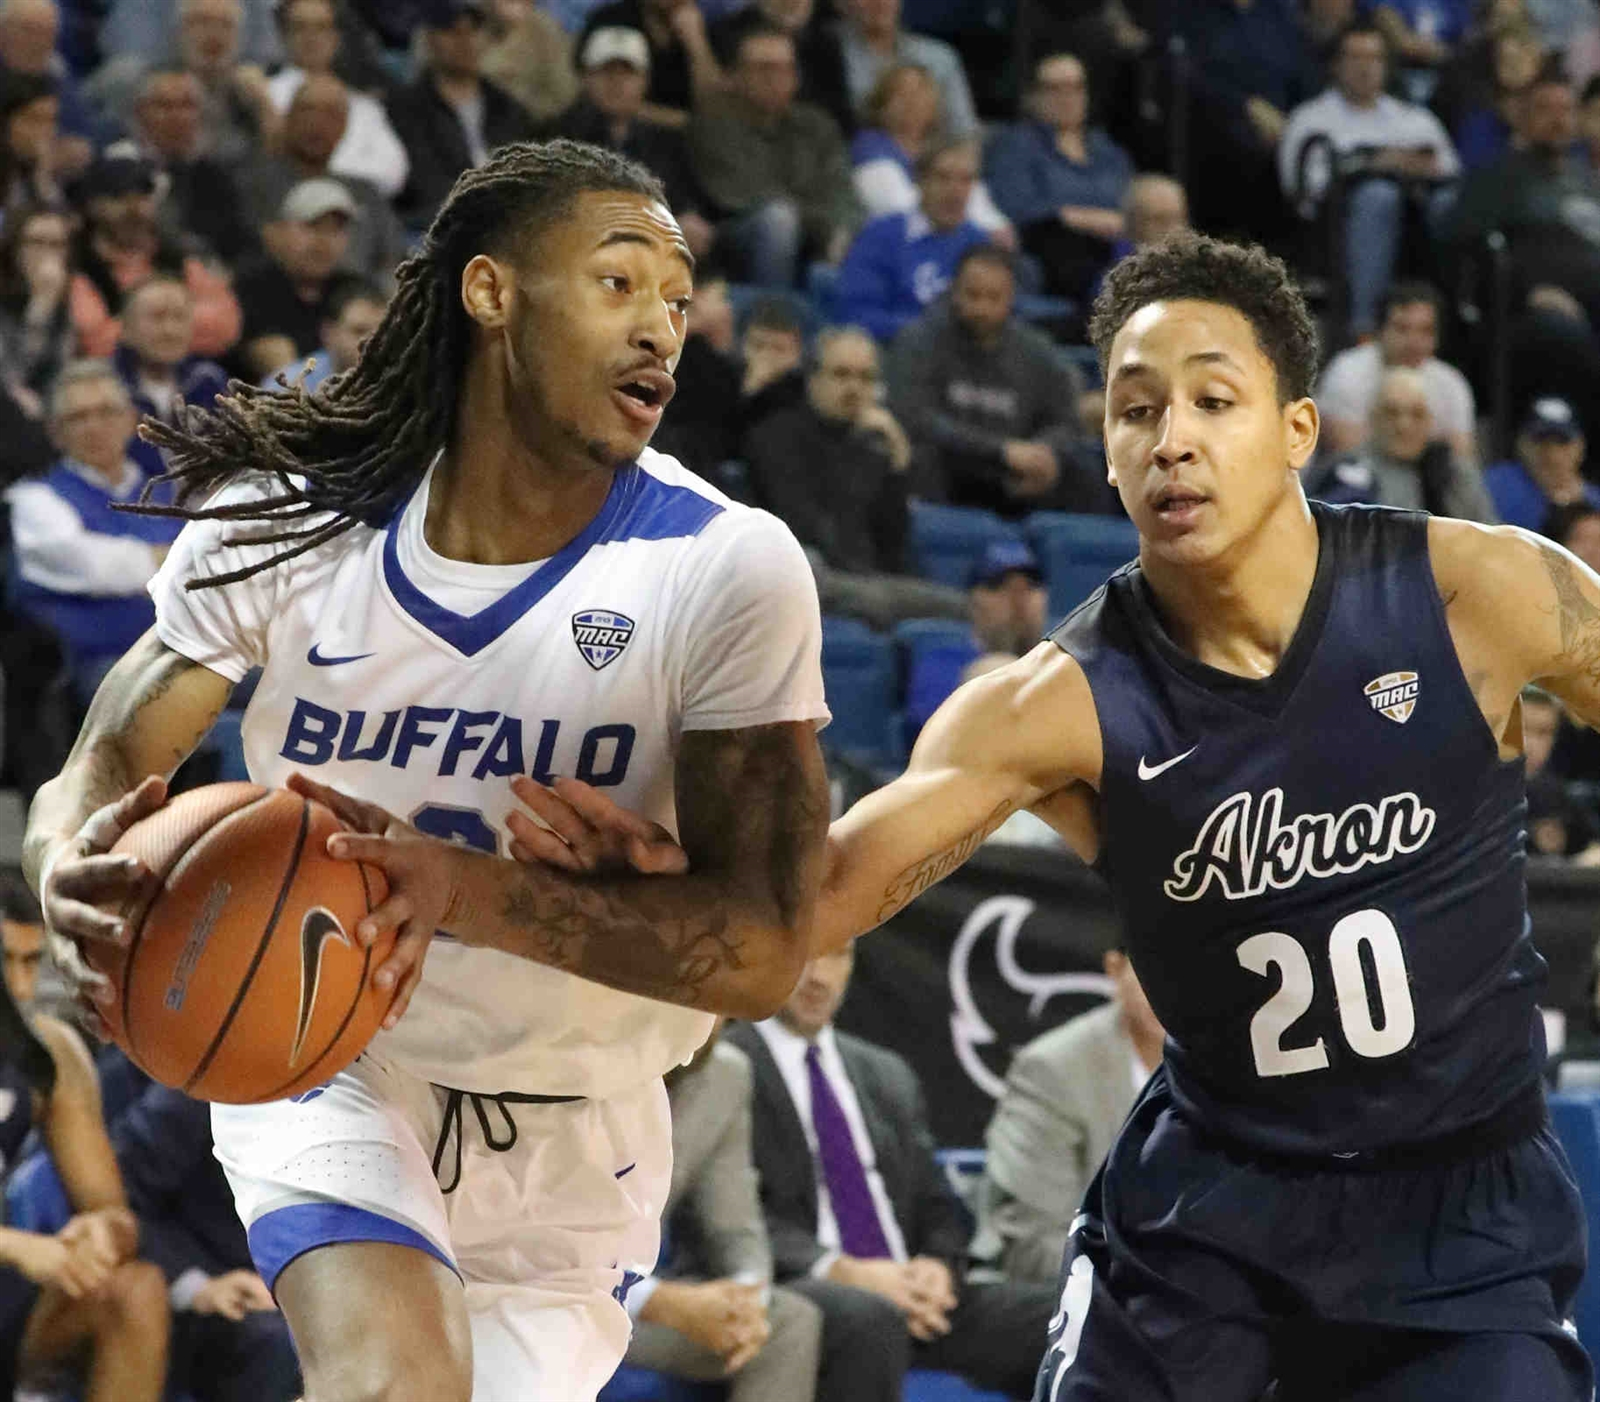 Buffalo Bulls guard James Reese (0) is fouled by Akron Zips guard Eric Parrish (20) in the first half.